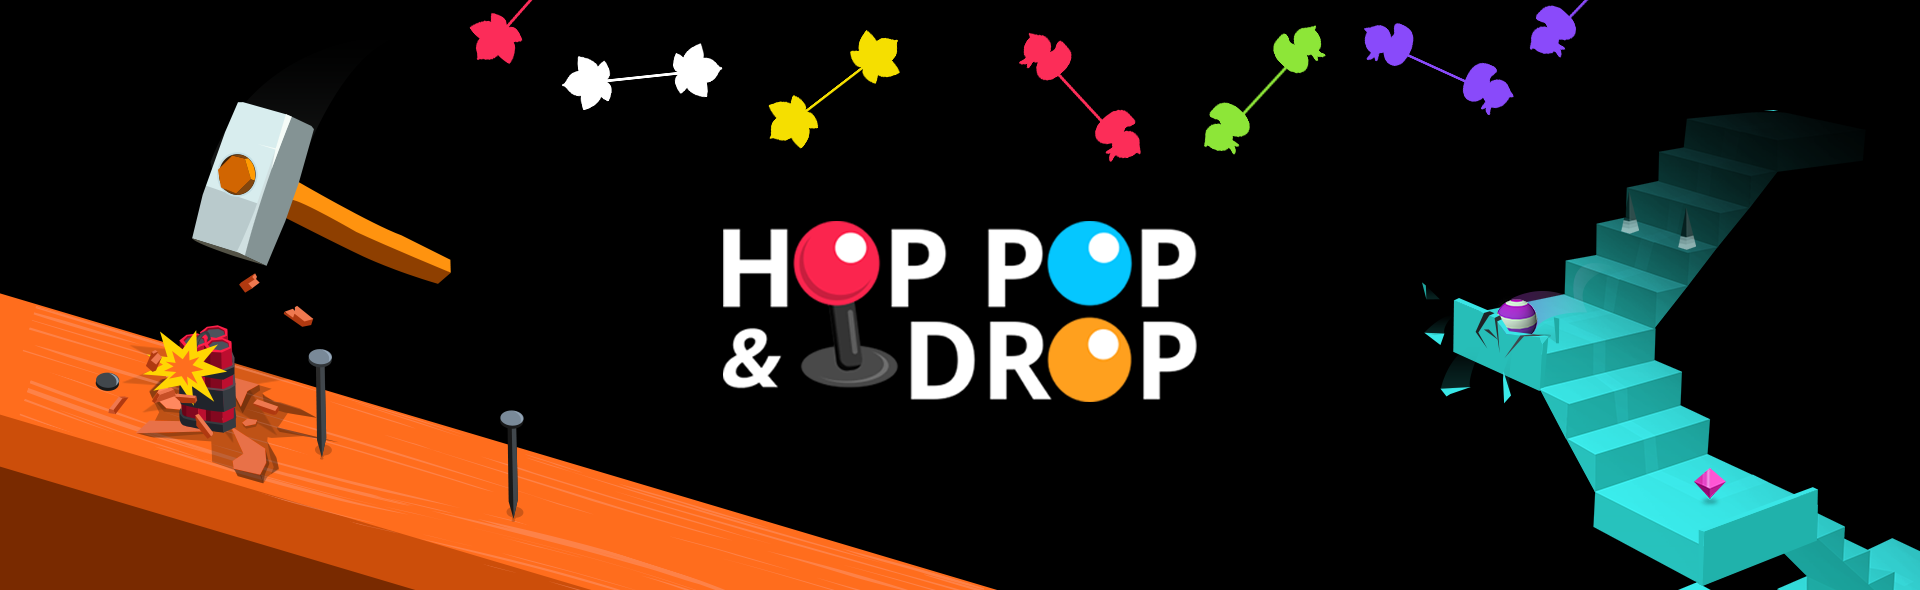 HOP POP & DROP